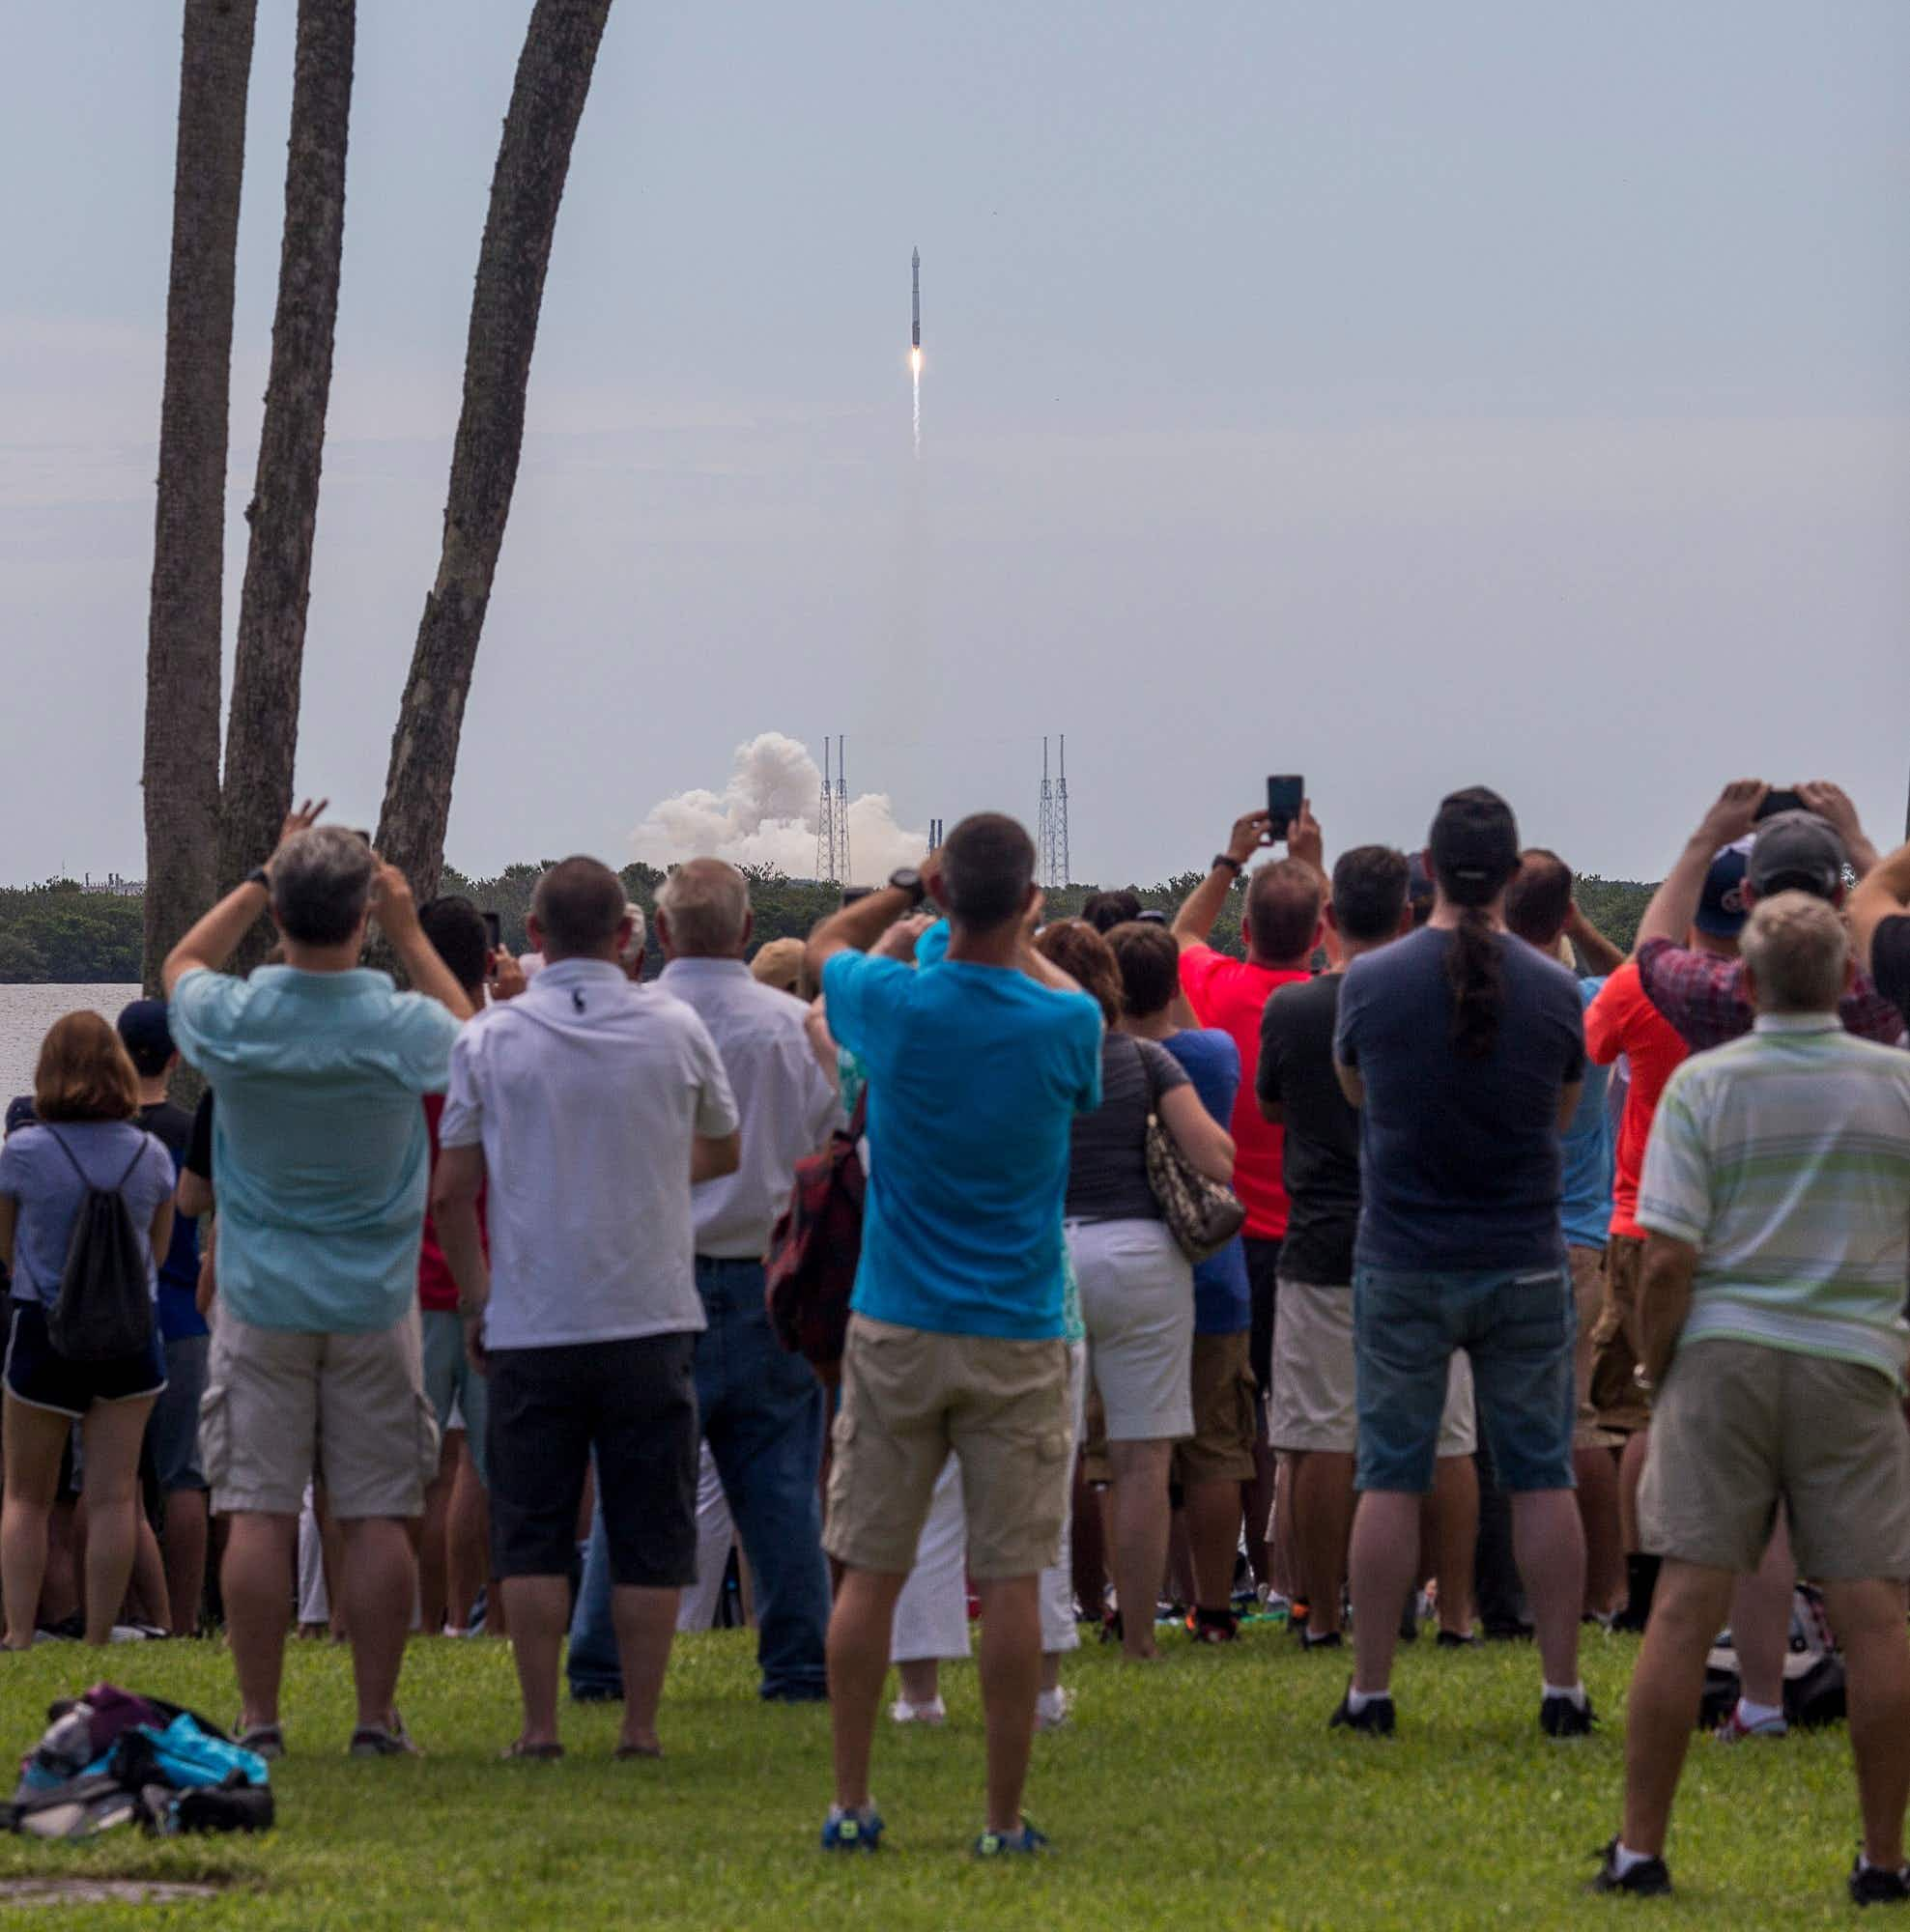 Rocket tourism takes off in Florida as thousands flock to see the latest blast-off